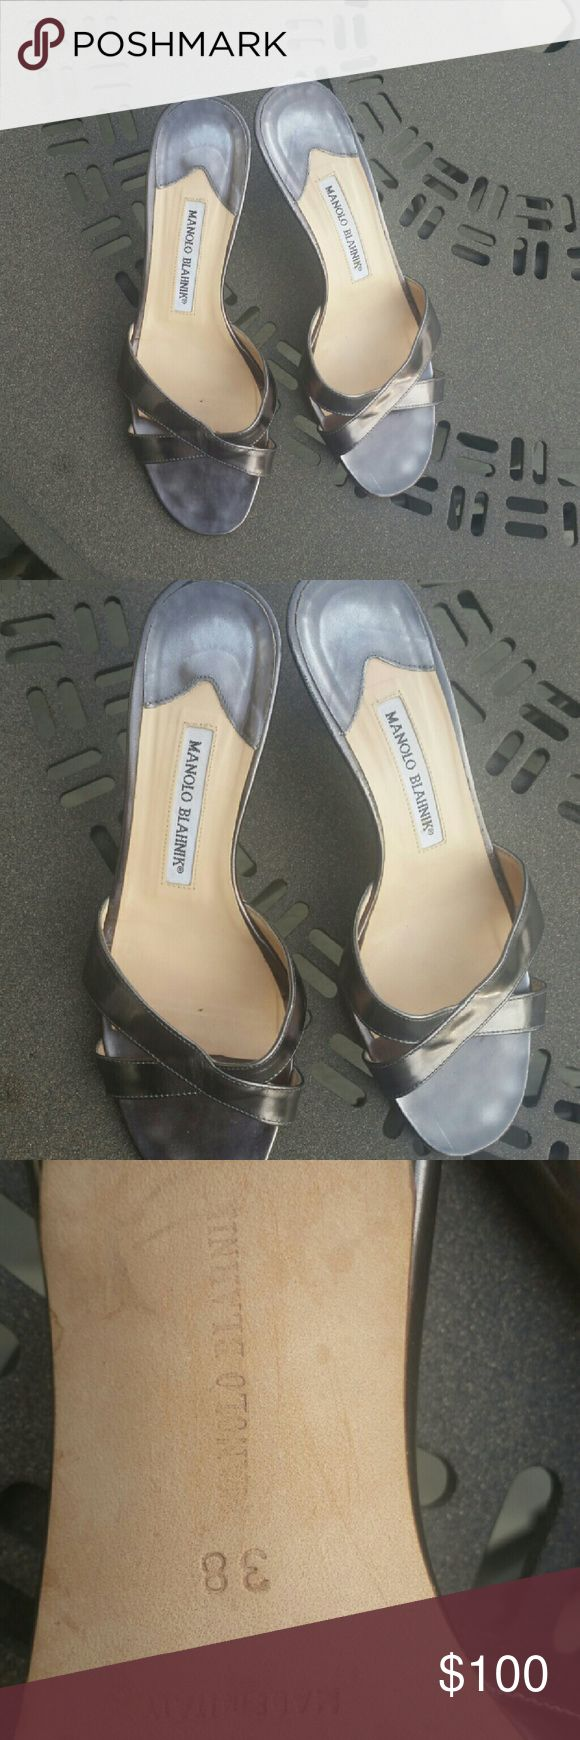 *sale*Manolo  Blahnik pewter sandals Manolo Blahnik pewter sandals.   In good condition. Manolo Blahnik Shoes Sandals